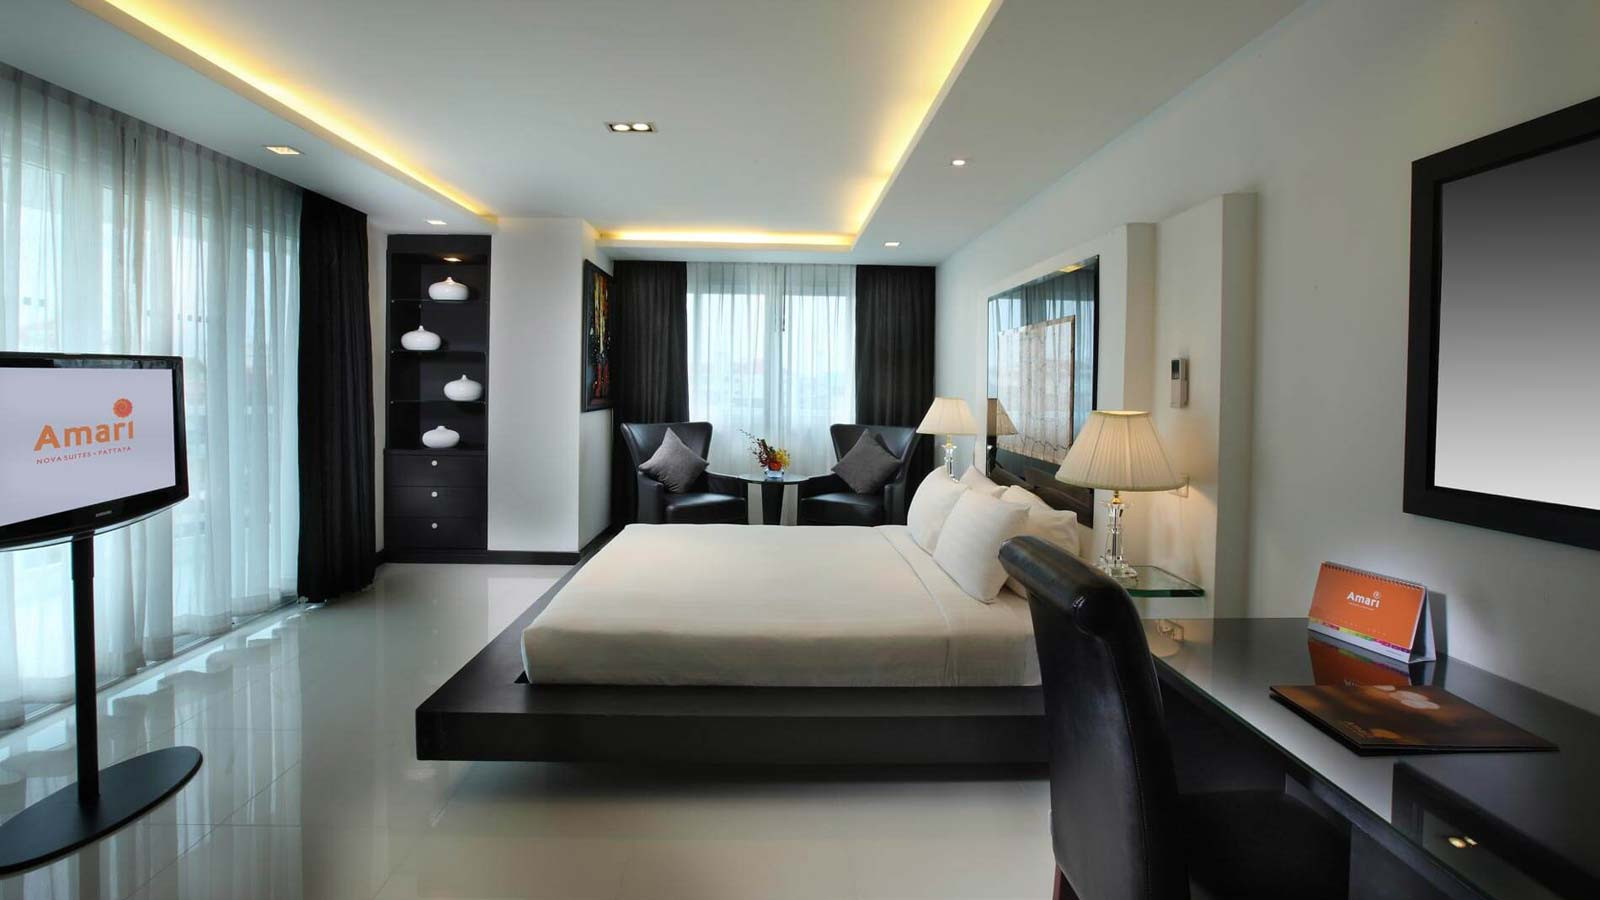 Best ideas about Hotels With Two Bedroom Suites . Save or Pin Two Bedroom Suite Amari Nova Suites Pattaya Now.